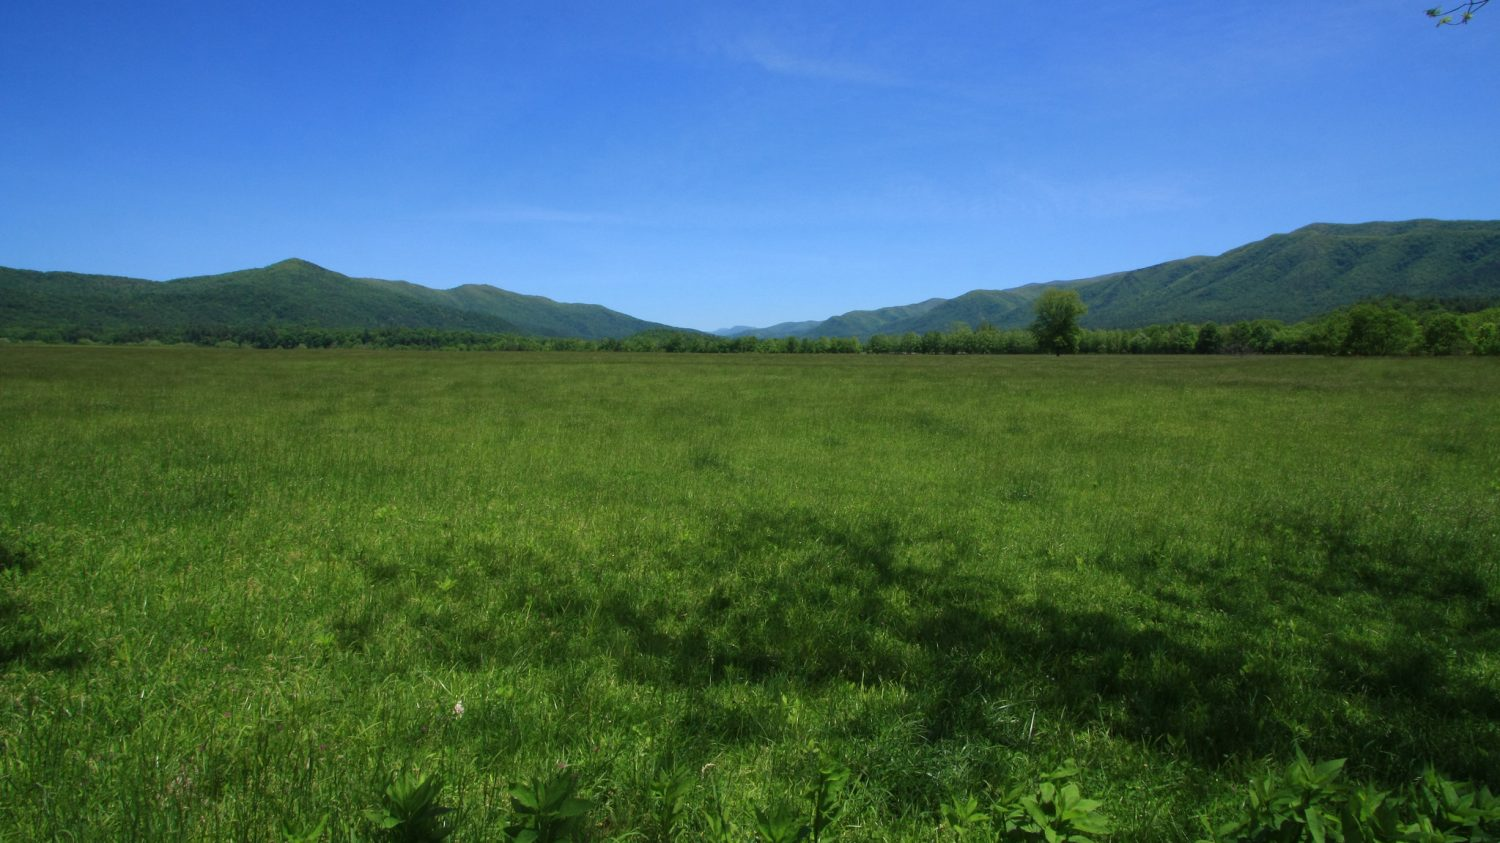 A vast view of the Cades Cove grassland in the Great Smoky Mountains National Park.